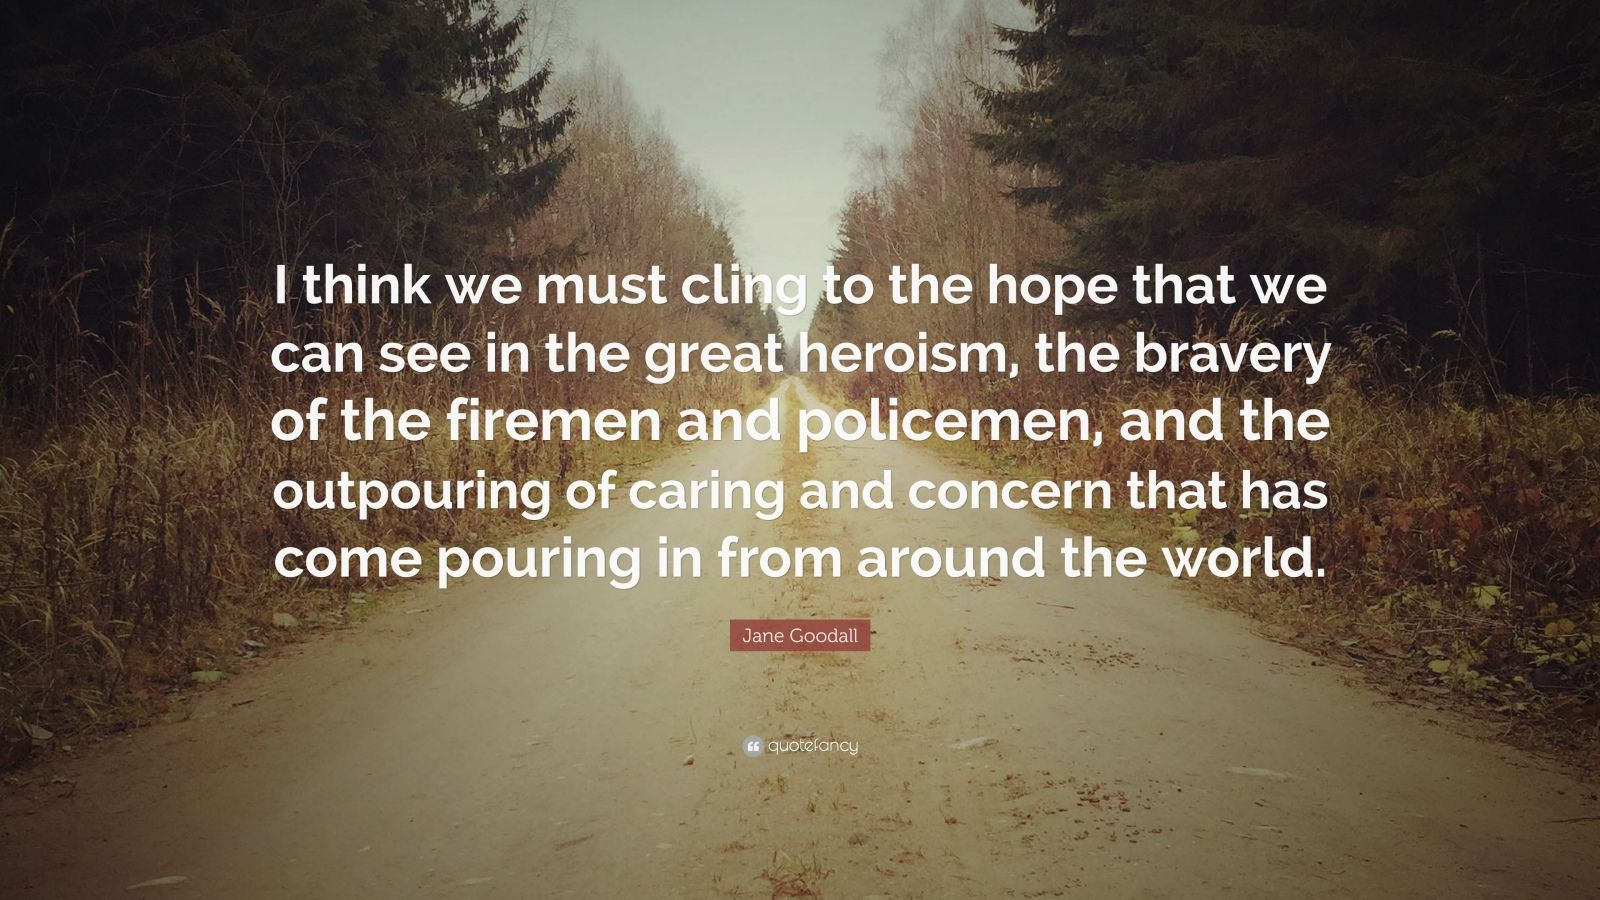 "Jane Goodall Quote: ""I think we must cling to the hope that we can see in the great heroism, the bravery of the firemen and policemen, and the outpouring of caring and concern that has come pouring in from around the world."""